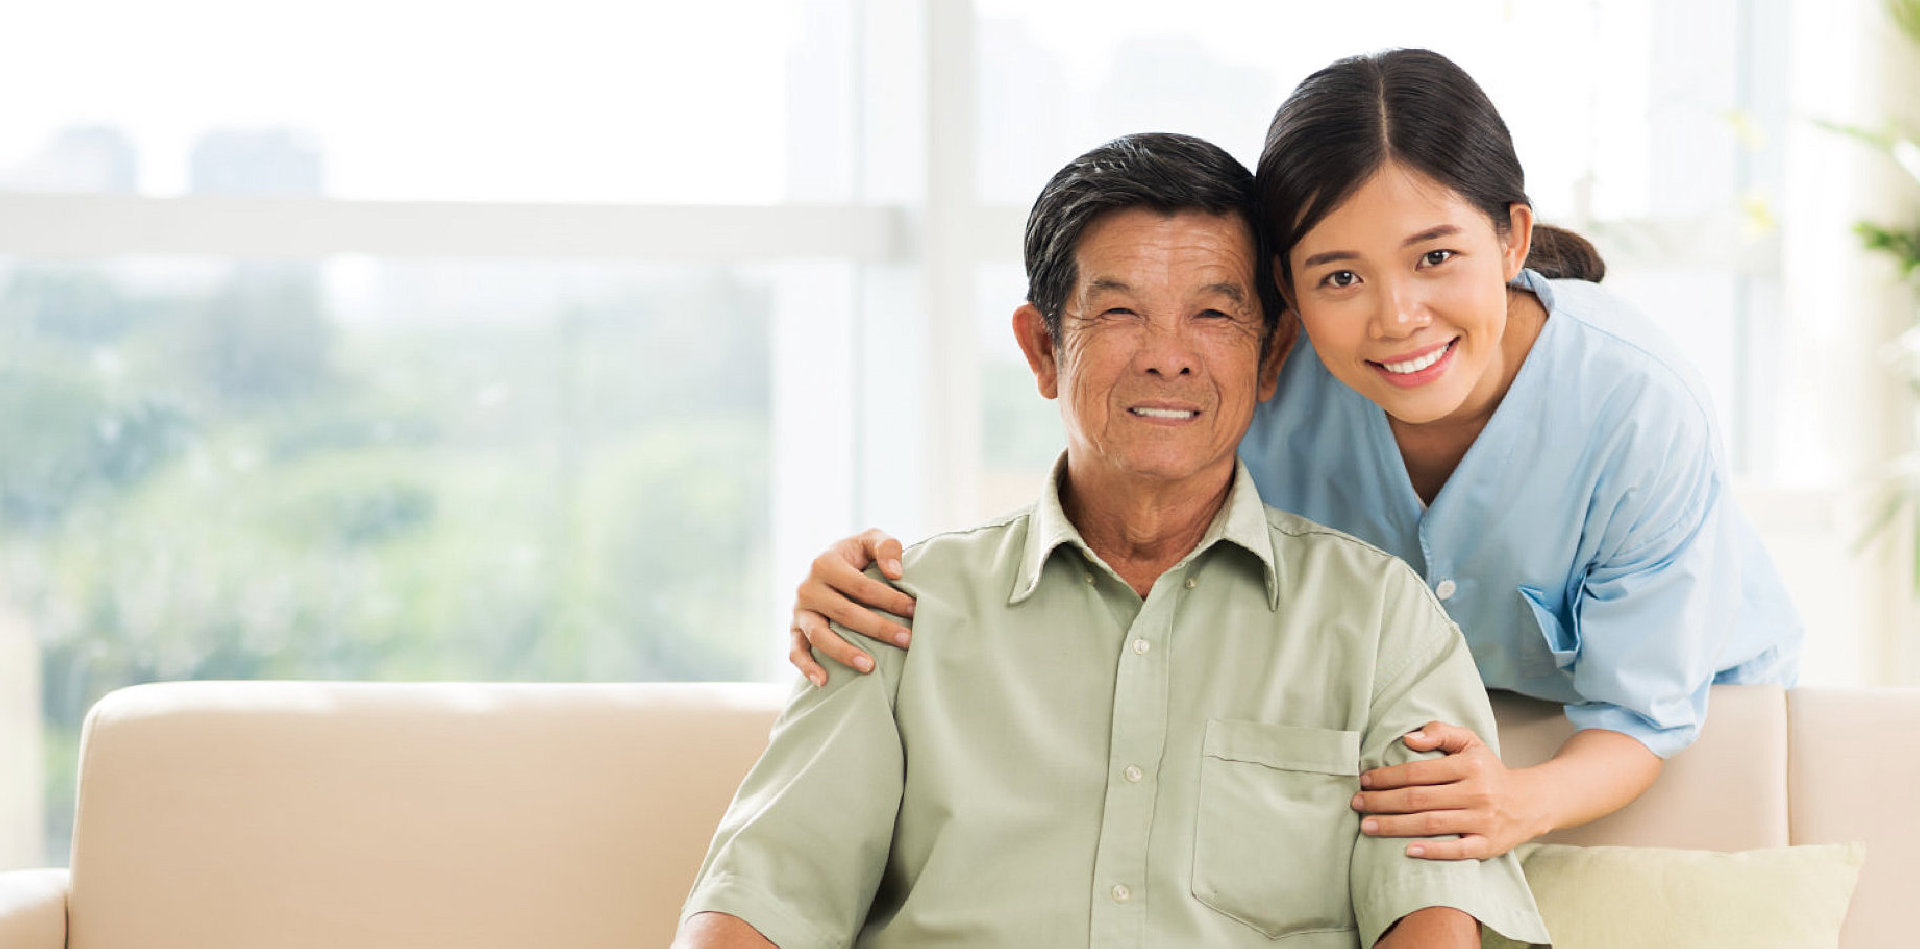 female caregiver and senior man smiling